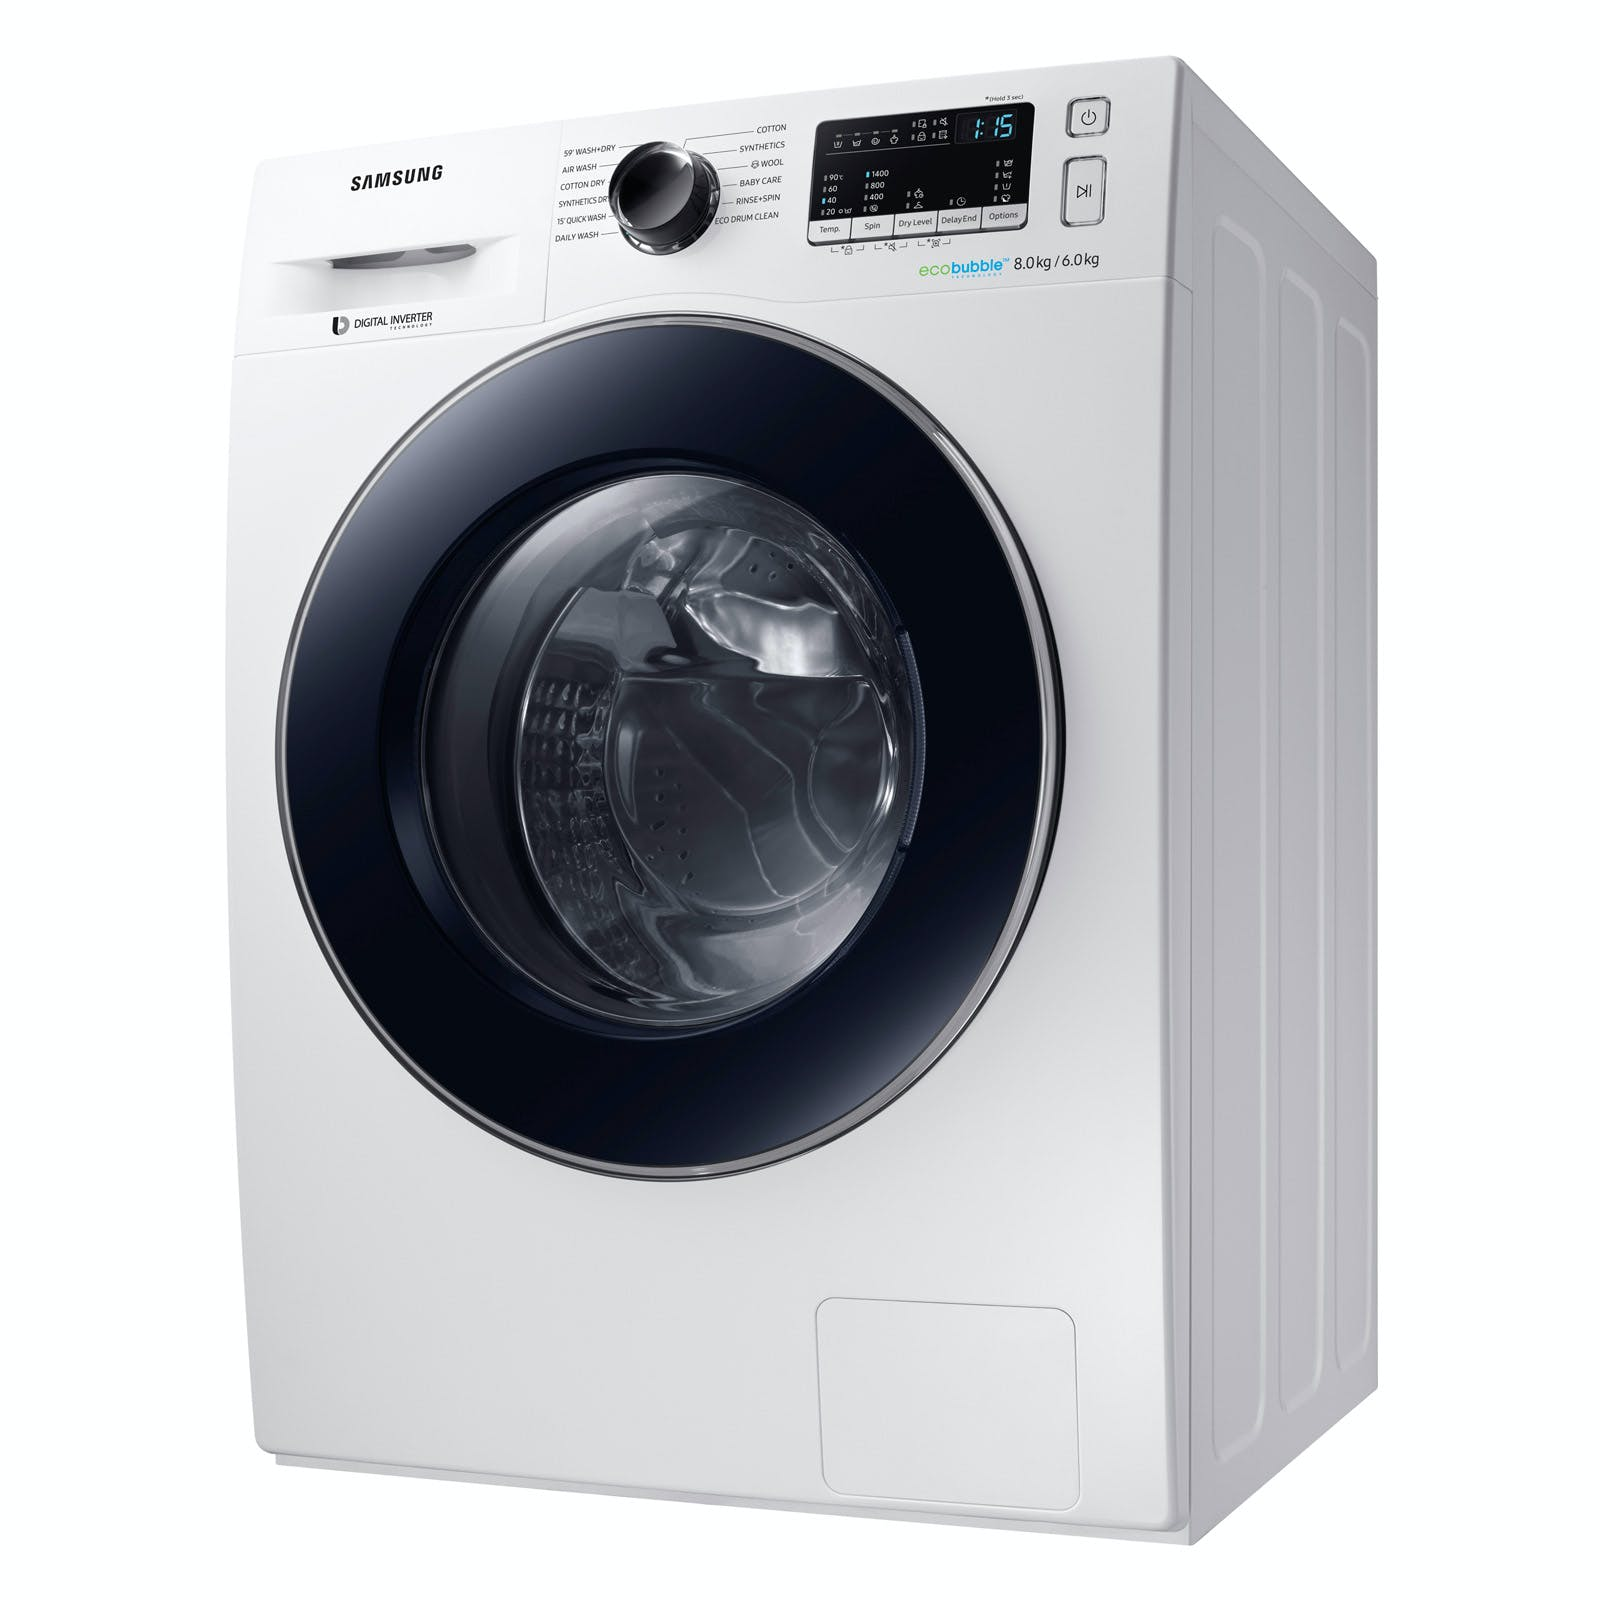 samsung wd80m4453jw eco bubble washer dryer in white. Black Bedroom Furniture Sets. Home Design Ideas